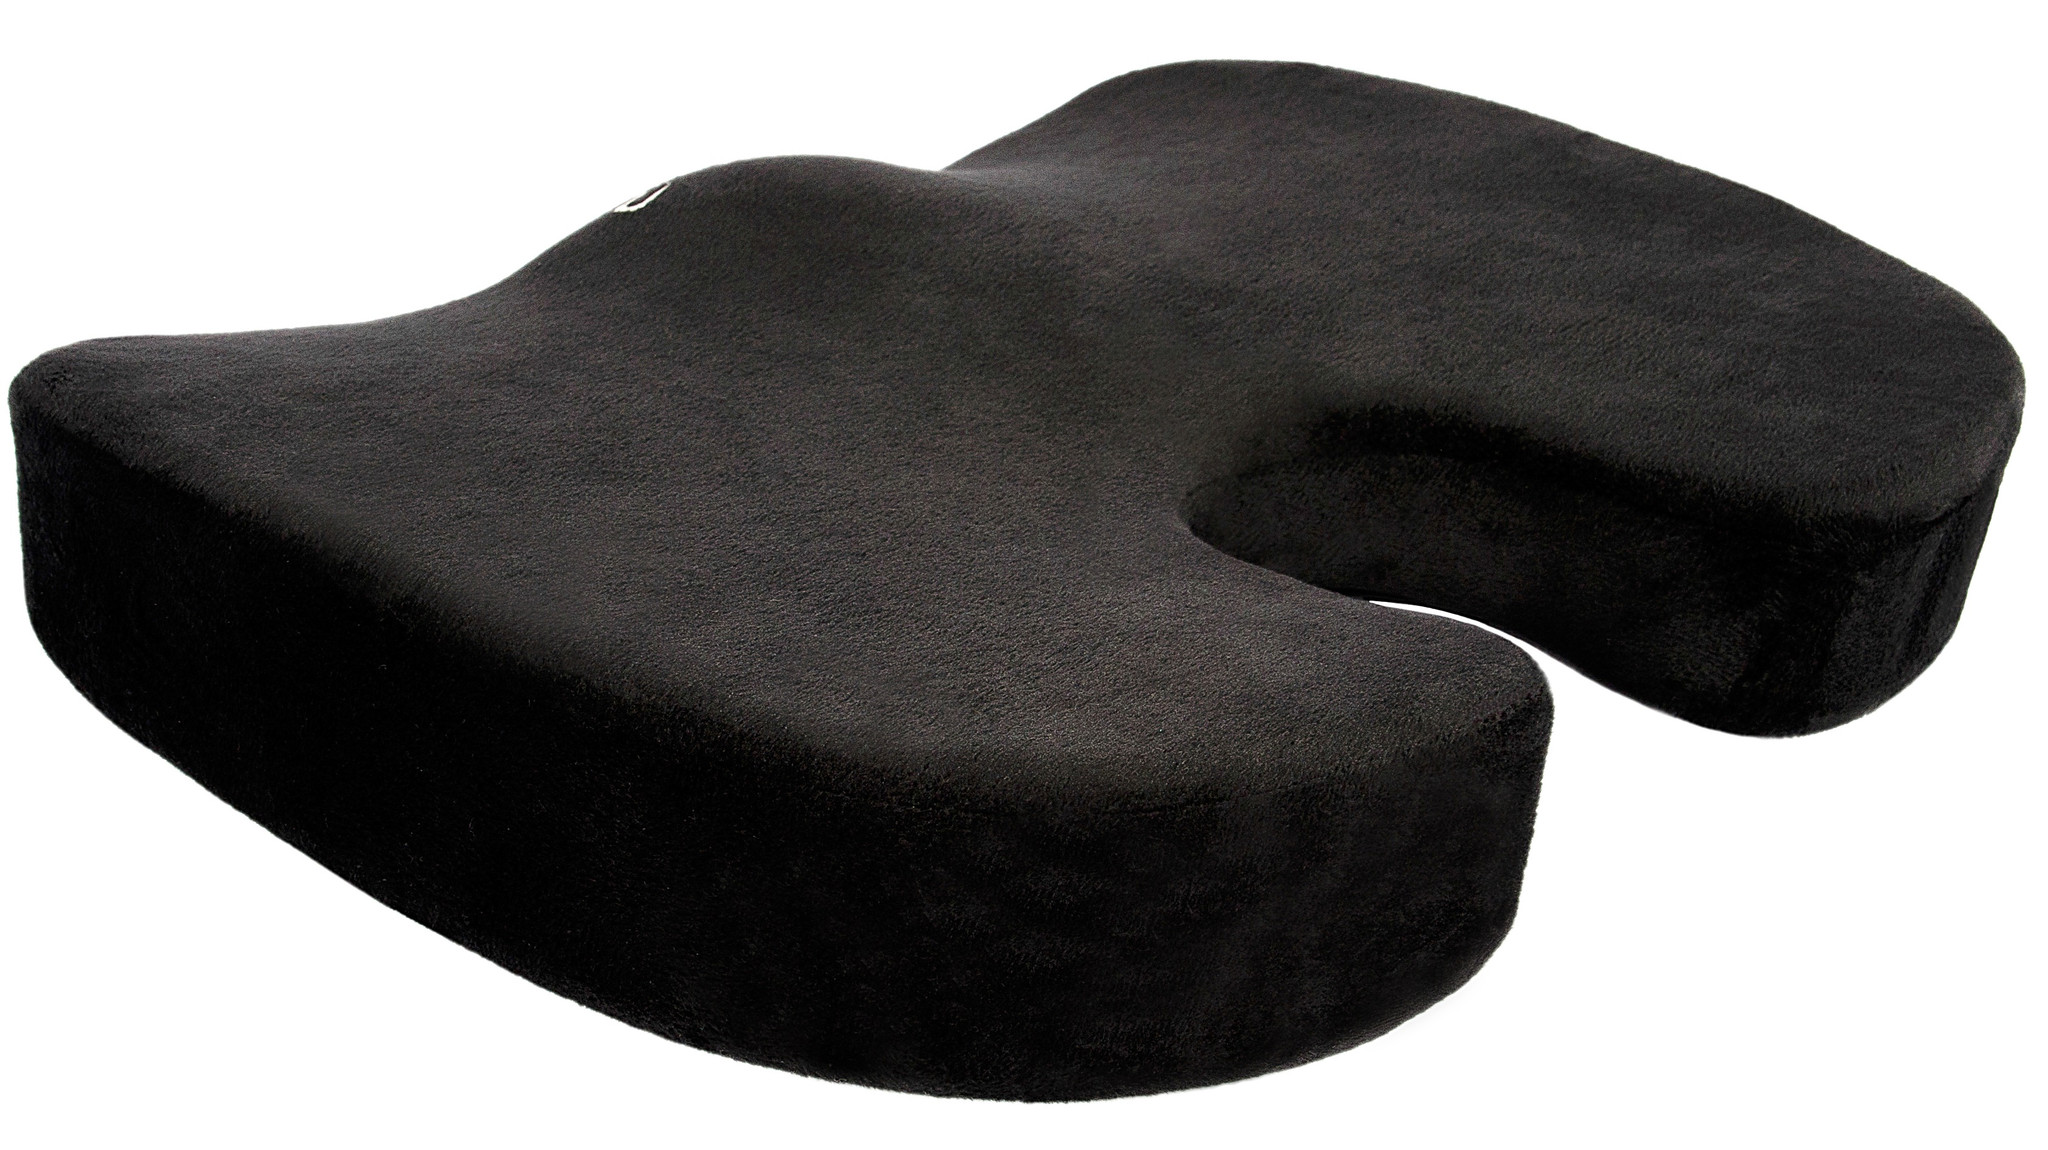 Sit Comfortable While Working With Cush Comfort Memory